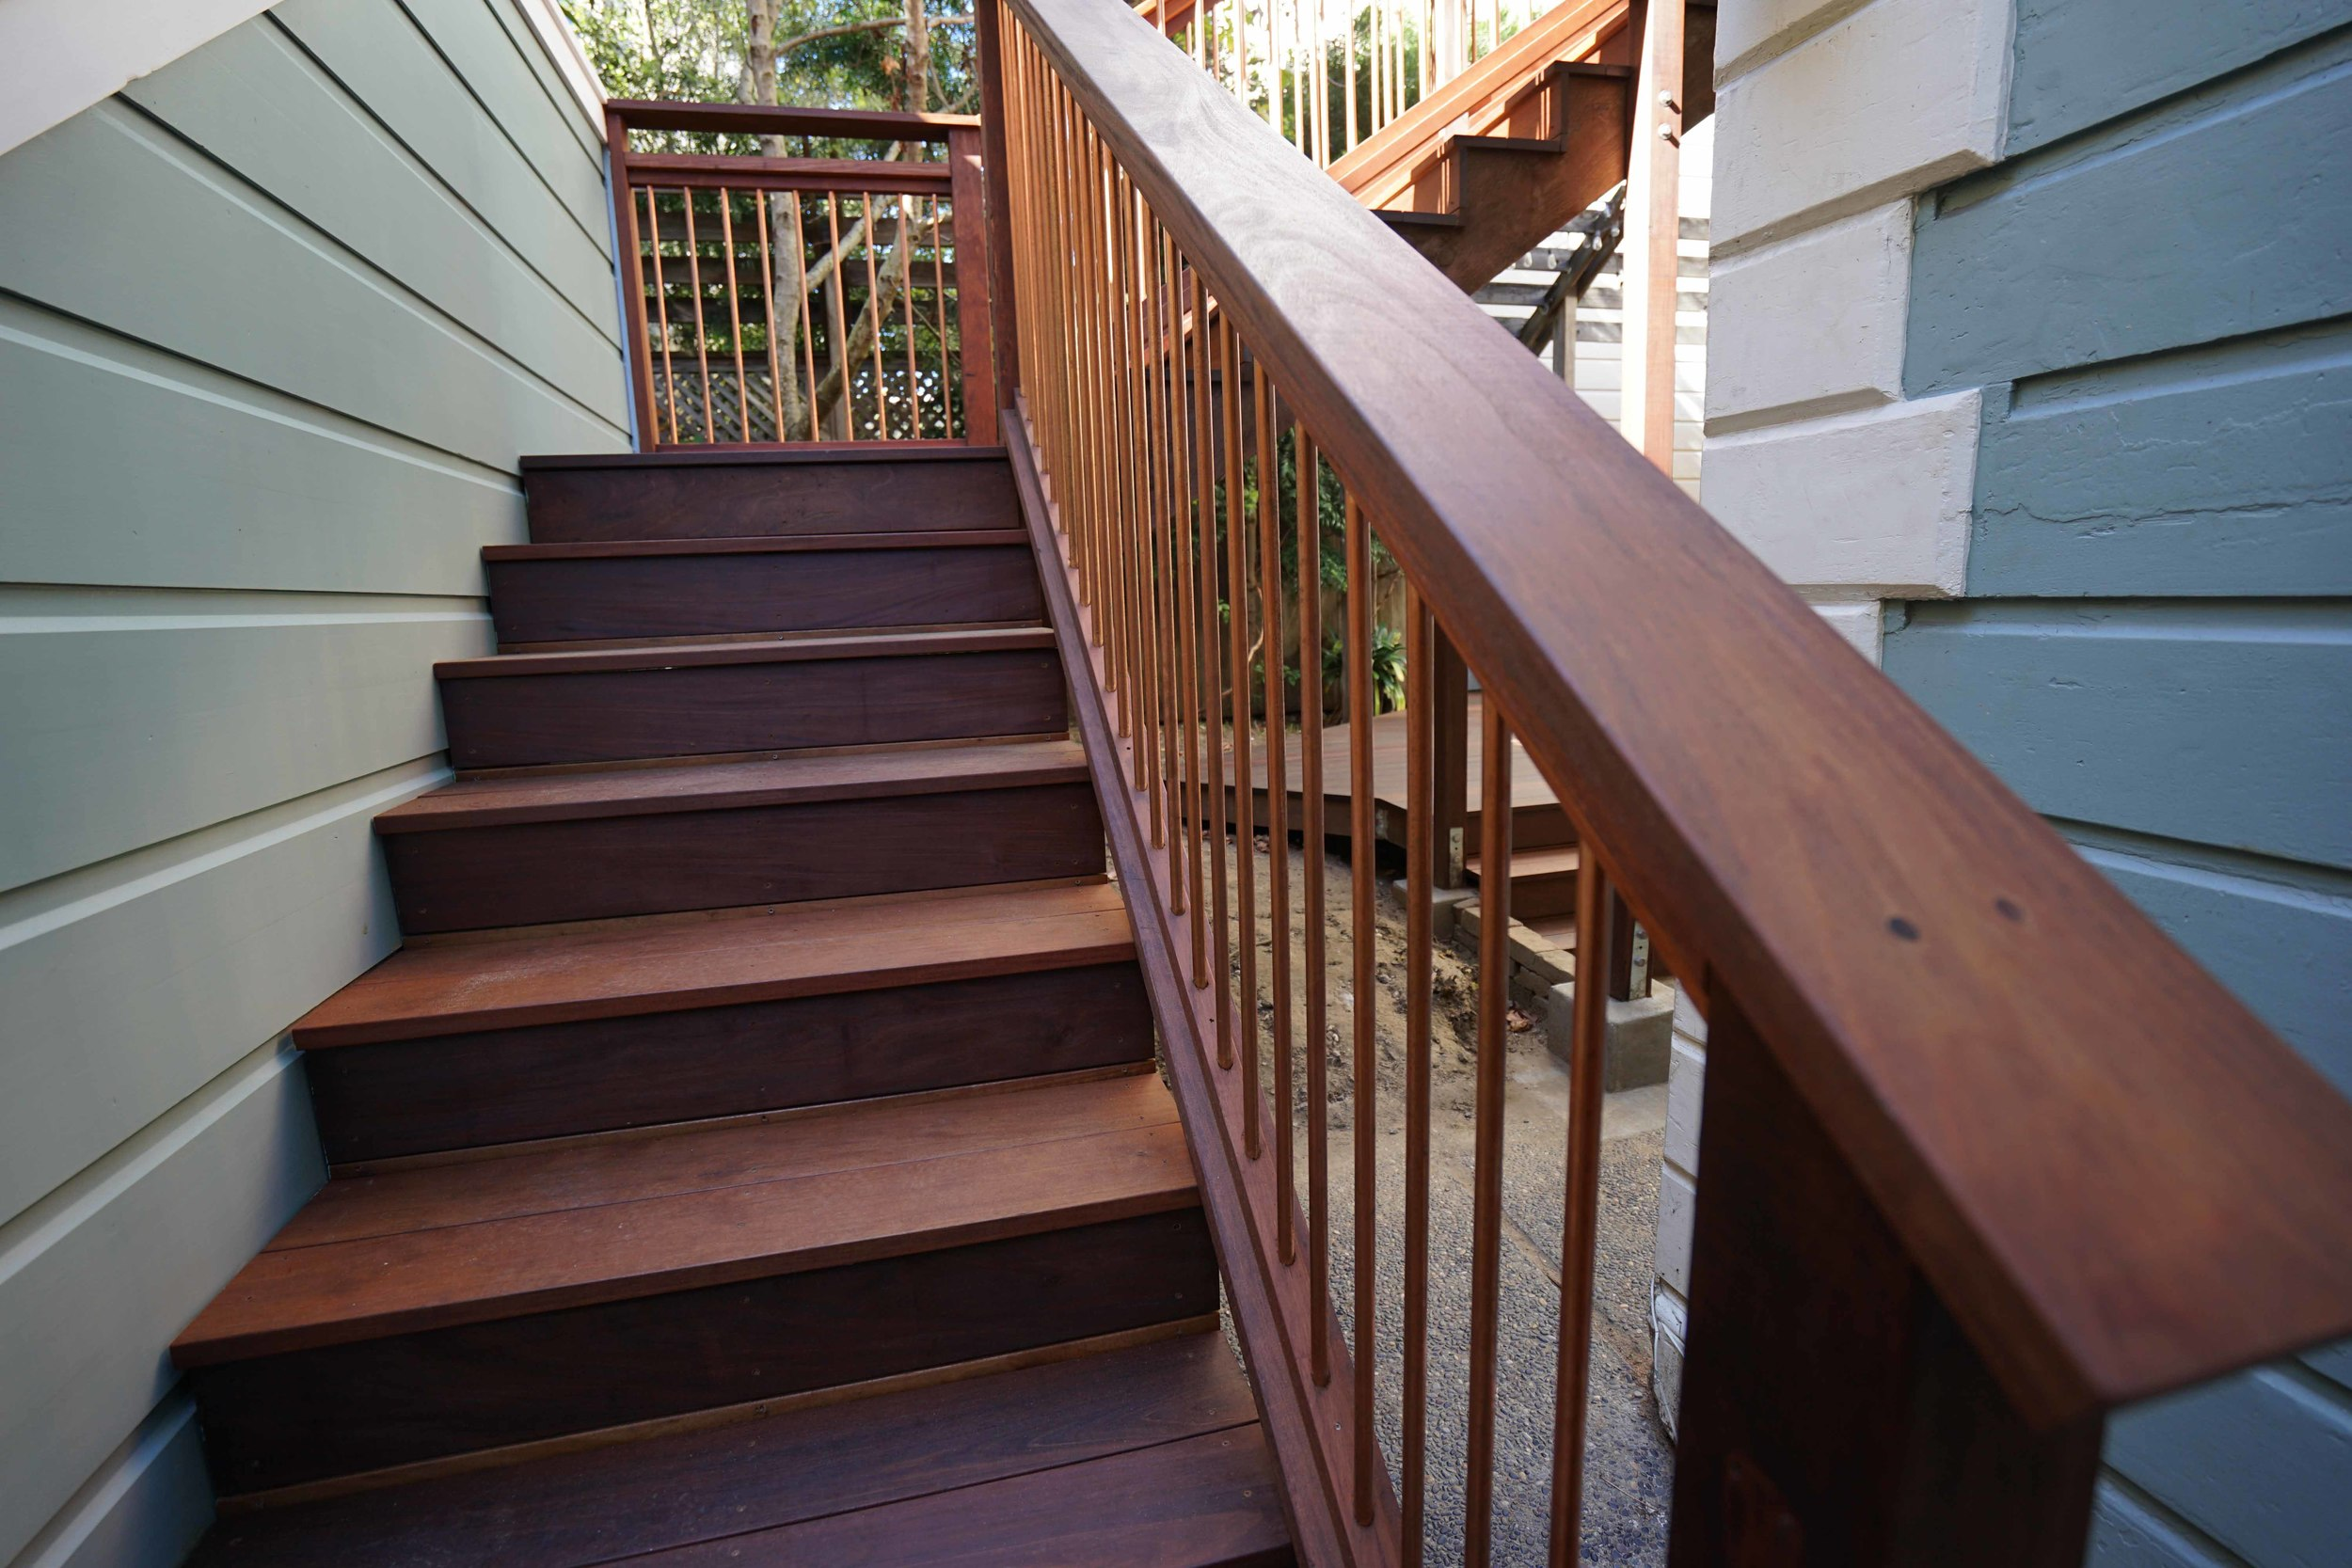 Scott Street Deck with Variance